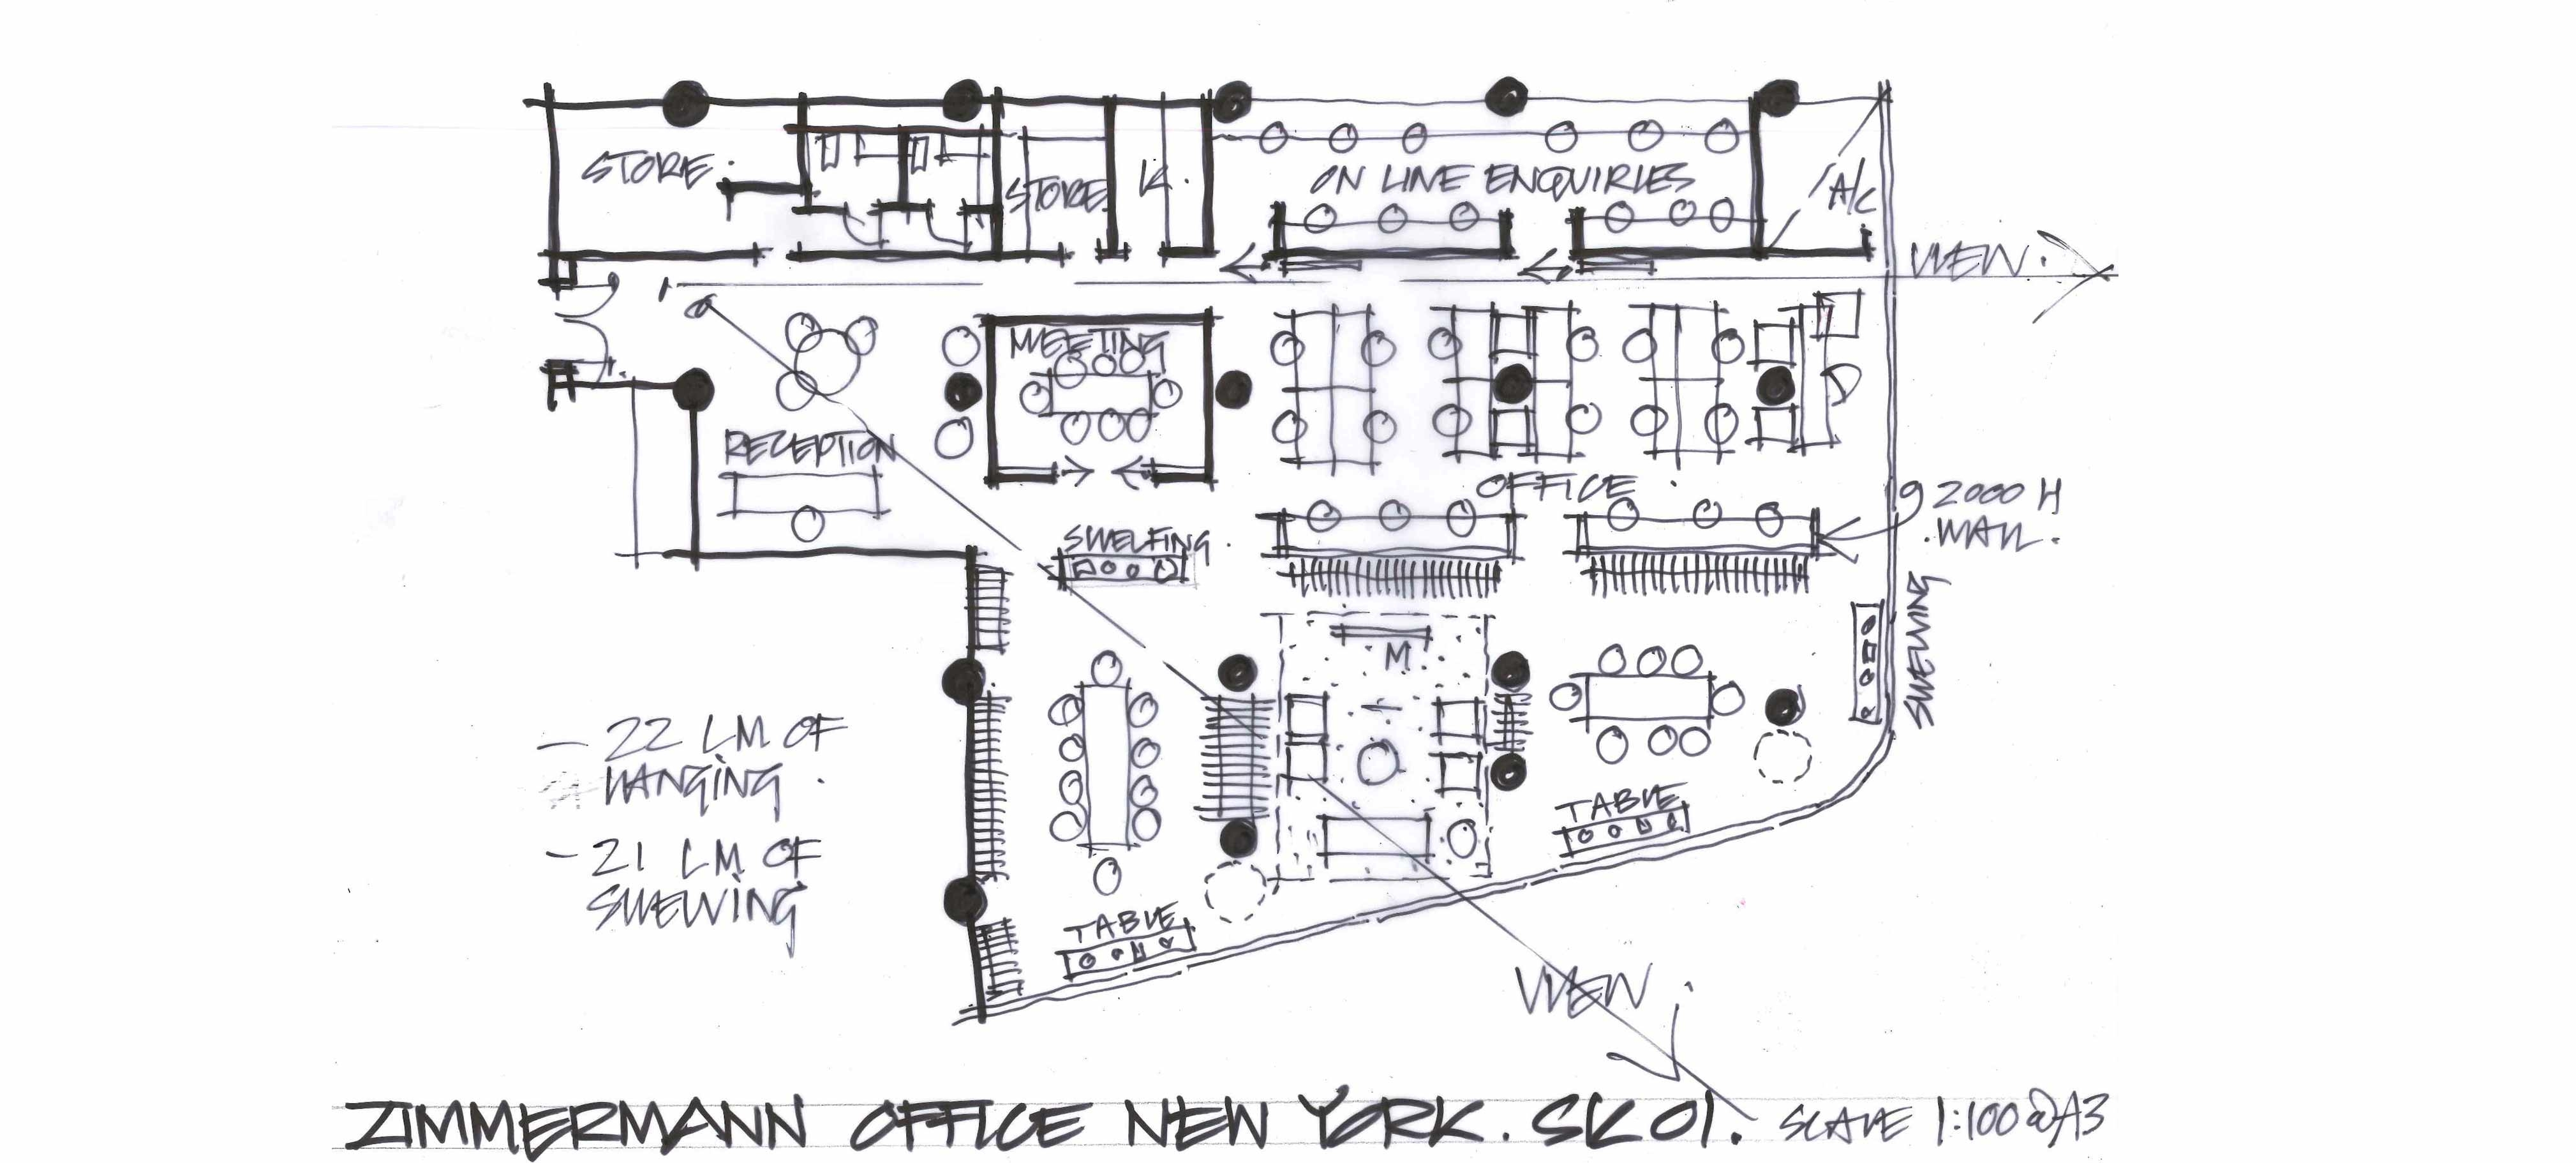 A sketch of our New York office's floor plan